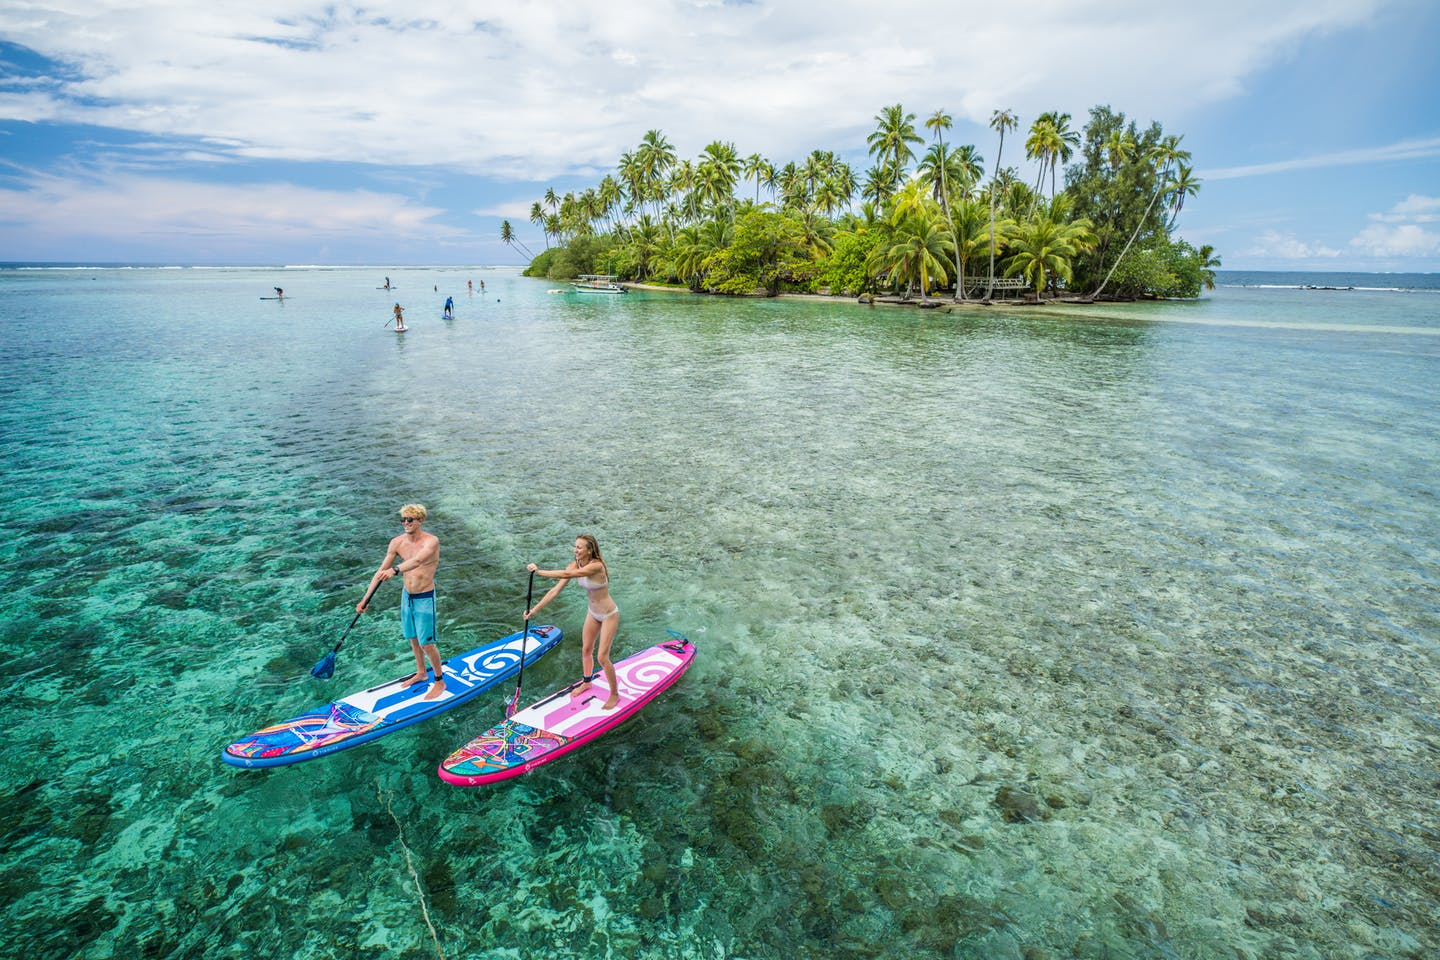 Stand up paddling against very clear waters